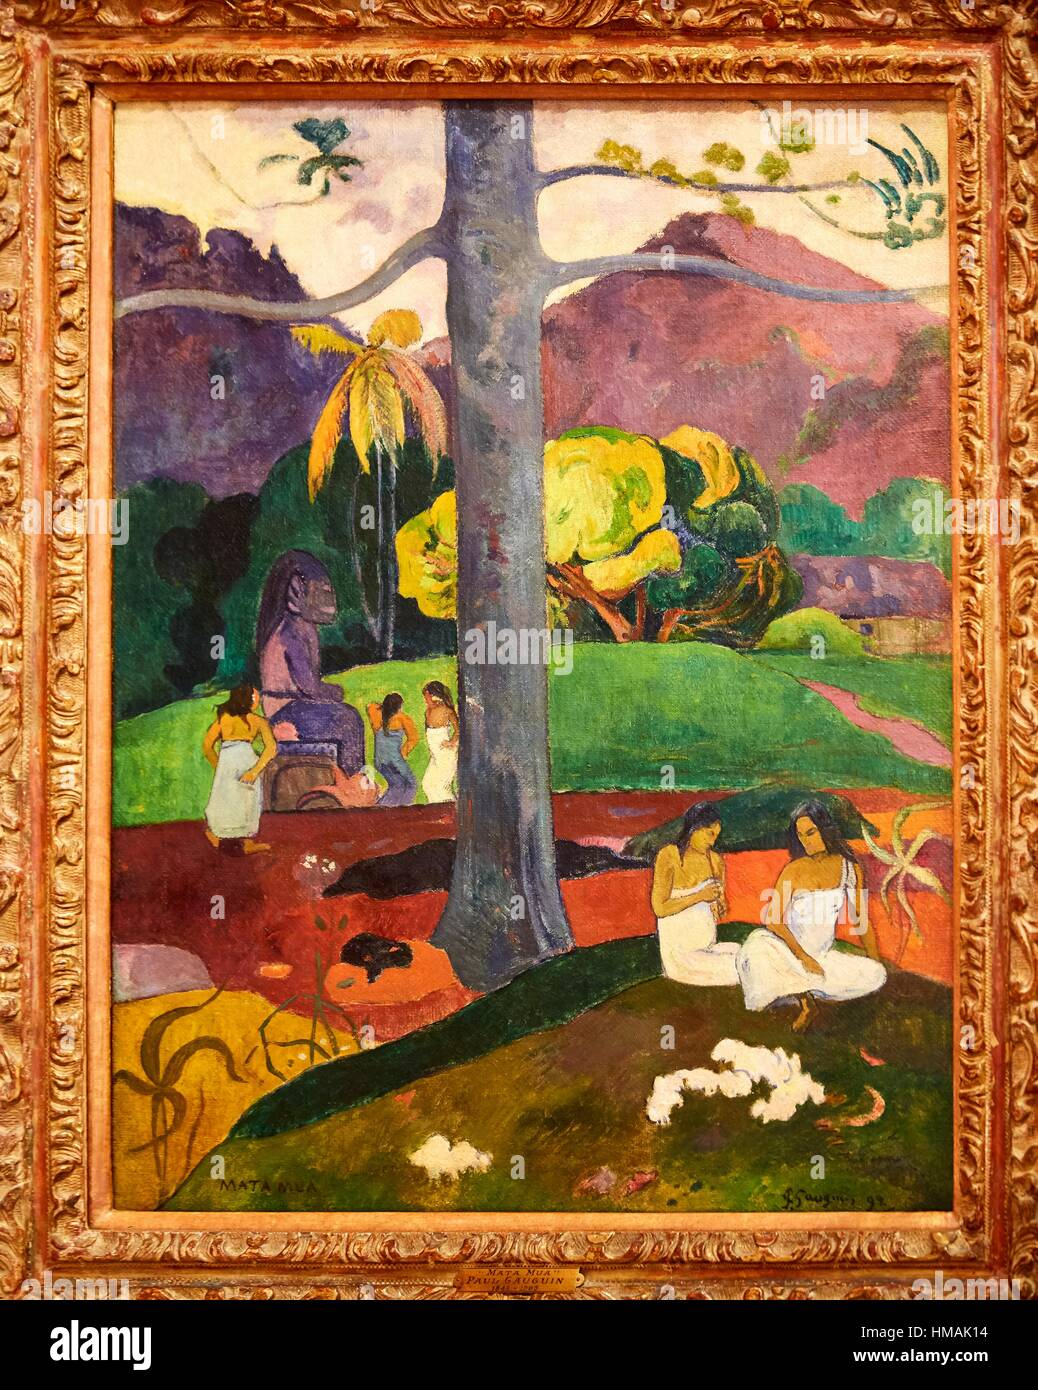 '''Mata Mua (In Olden Times)'', 1892, Paul Gauguin, Thyssen-Bornemisza Museum, Madrid, Spain - Stock Image